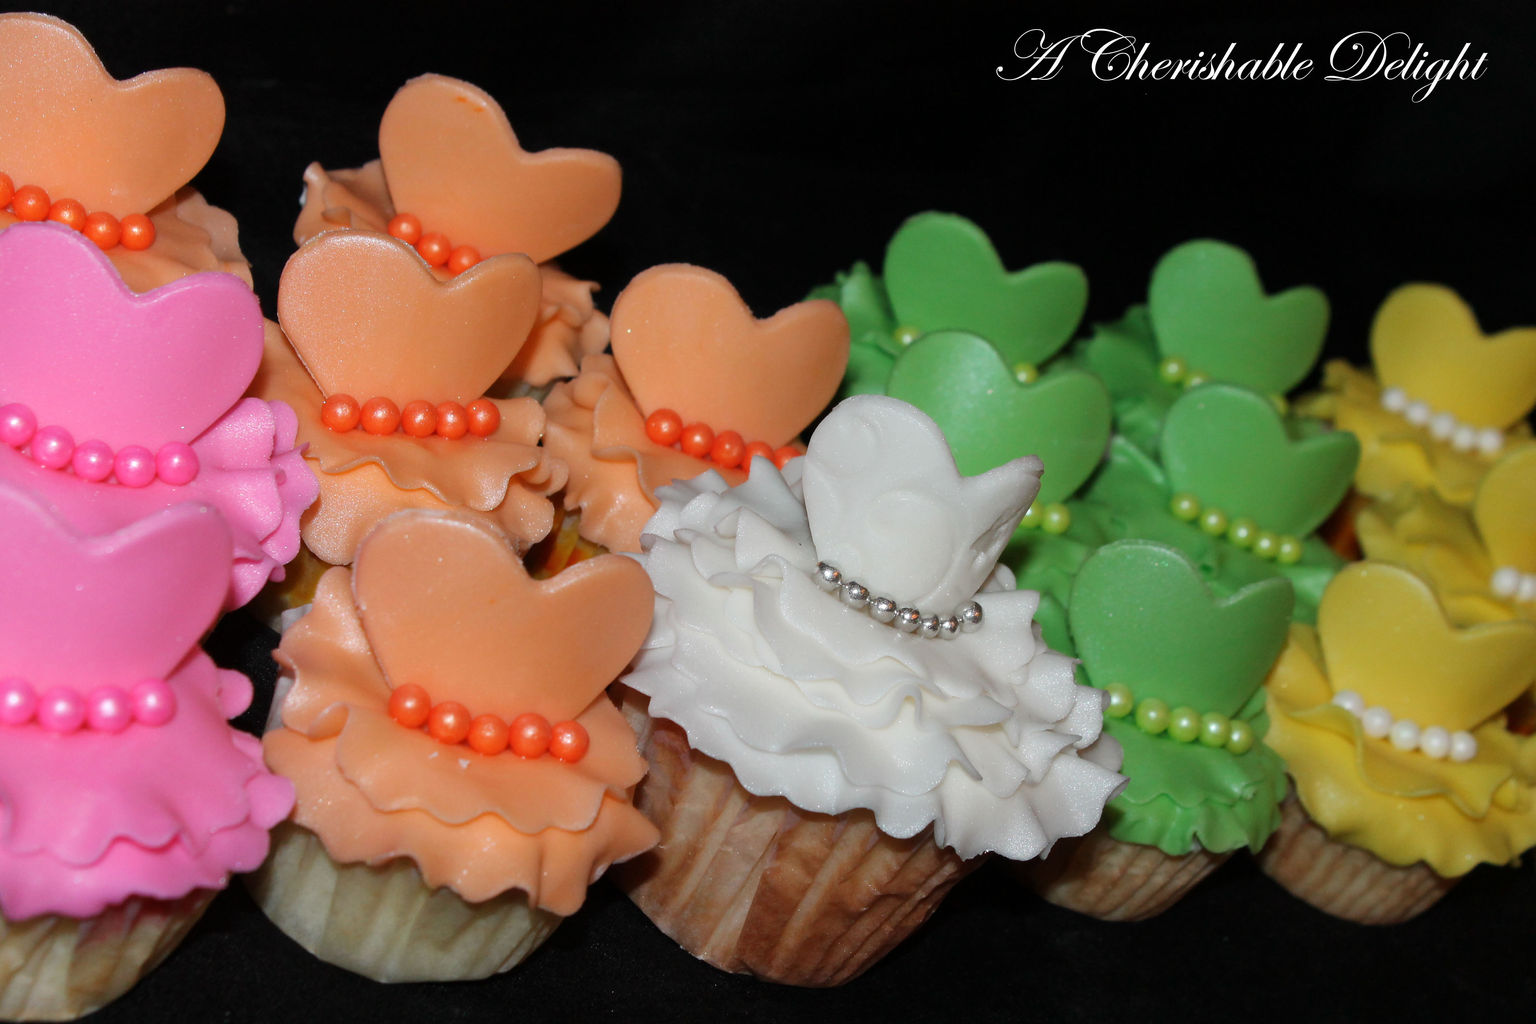 A Cherishable Delight Cakes Cupcakes Cookies